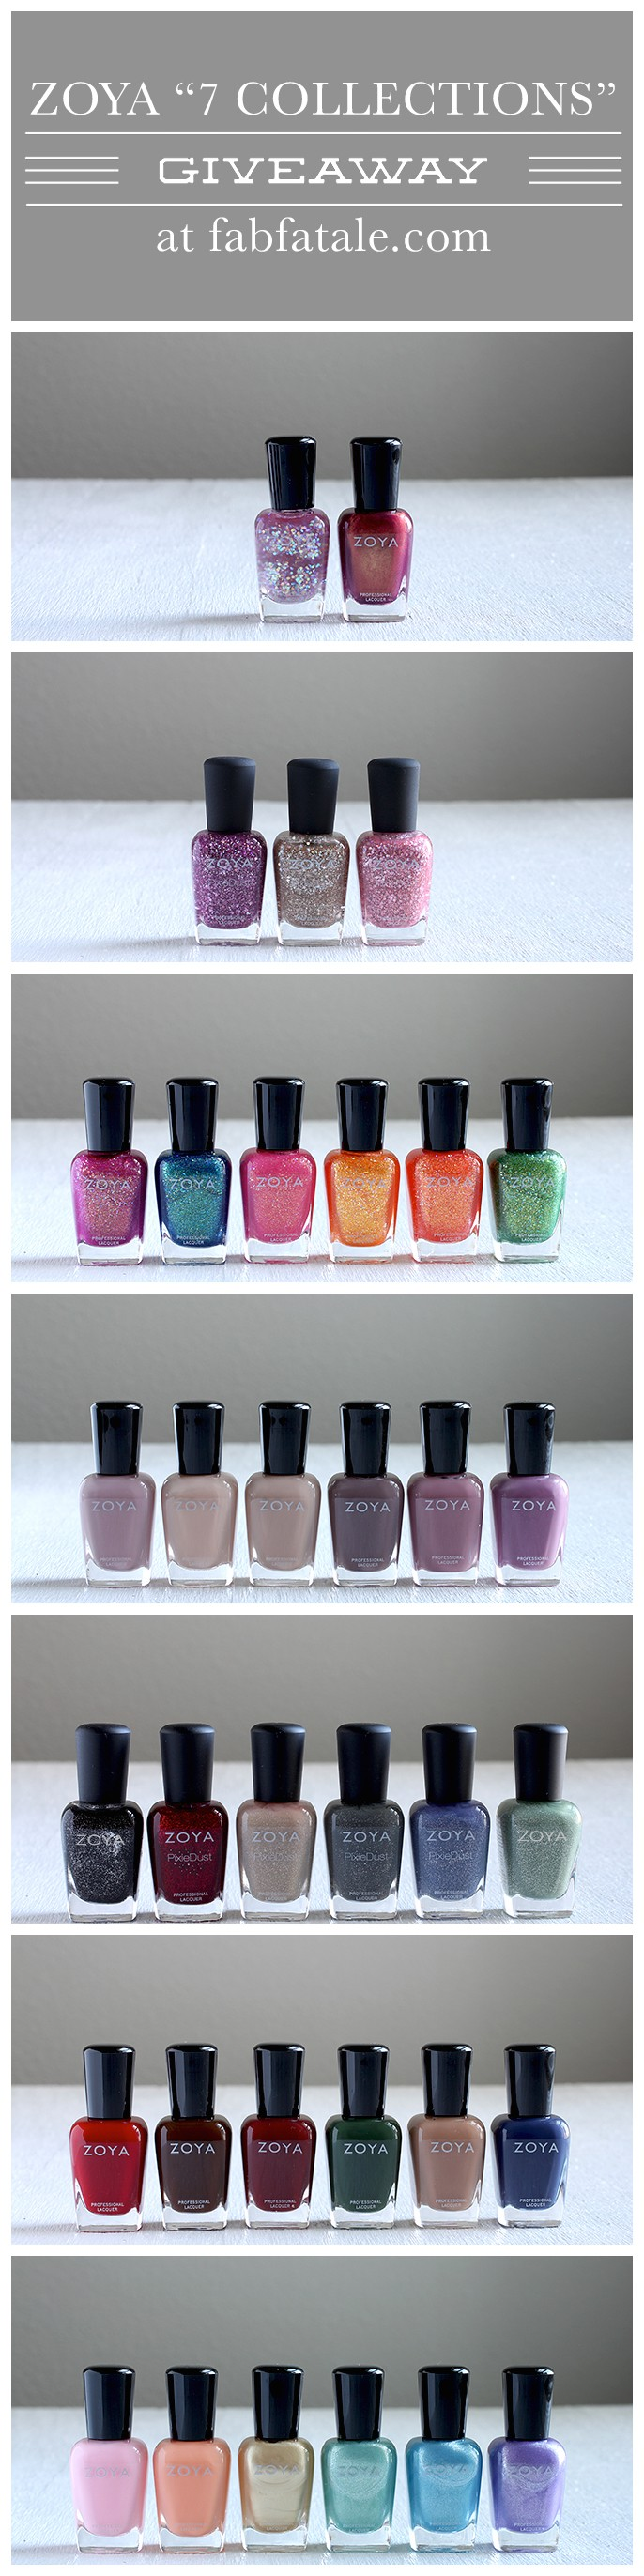 I just entered to win the entire Zoya 7 collection giveaway at http://www.fabfatale.com/2014/07/manicure-mondays-my-biggest-zoya-giveaway-ever #zoya #nailpolish #giveaway